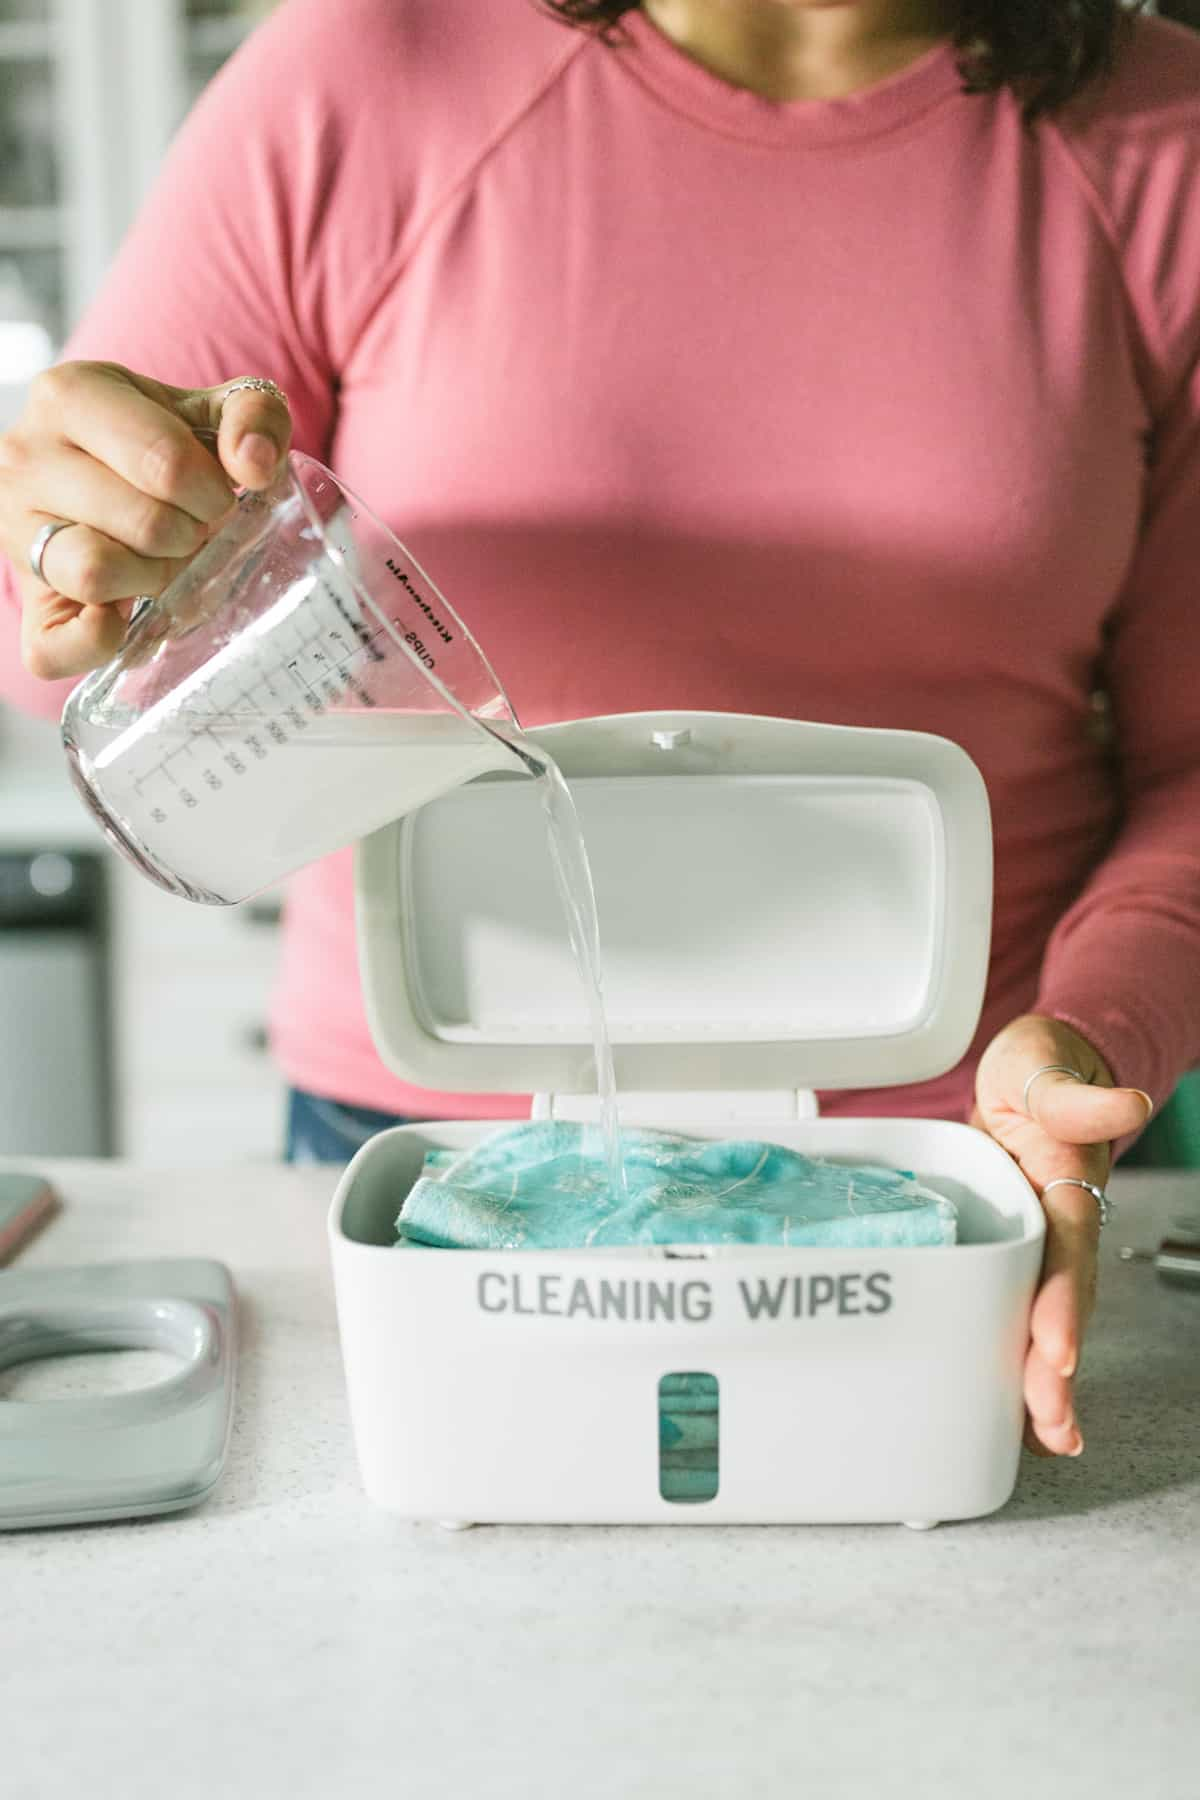 Woman's hands pouring a glass measuring cup of cleaning solution over a container of reusable wipes.